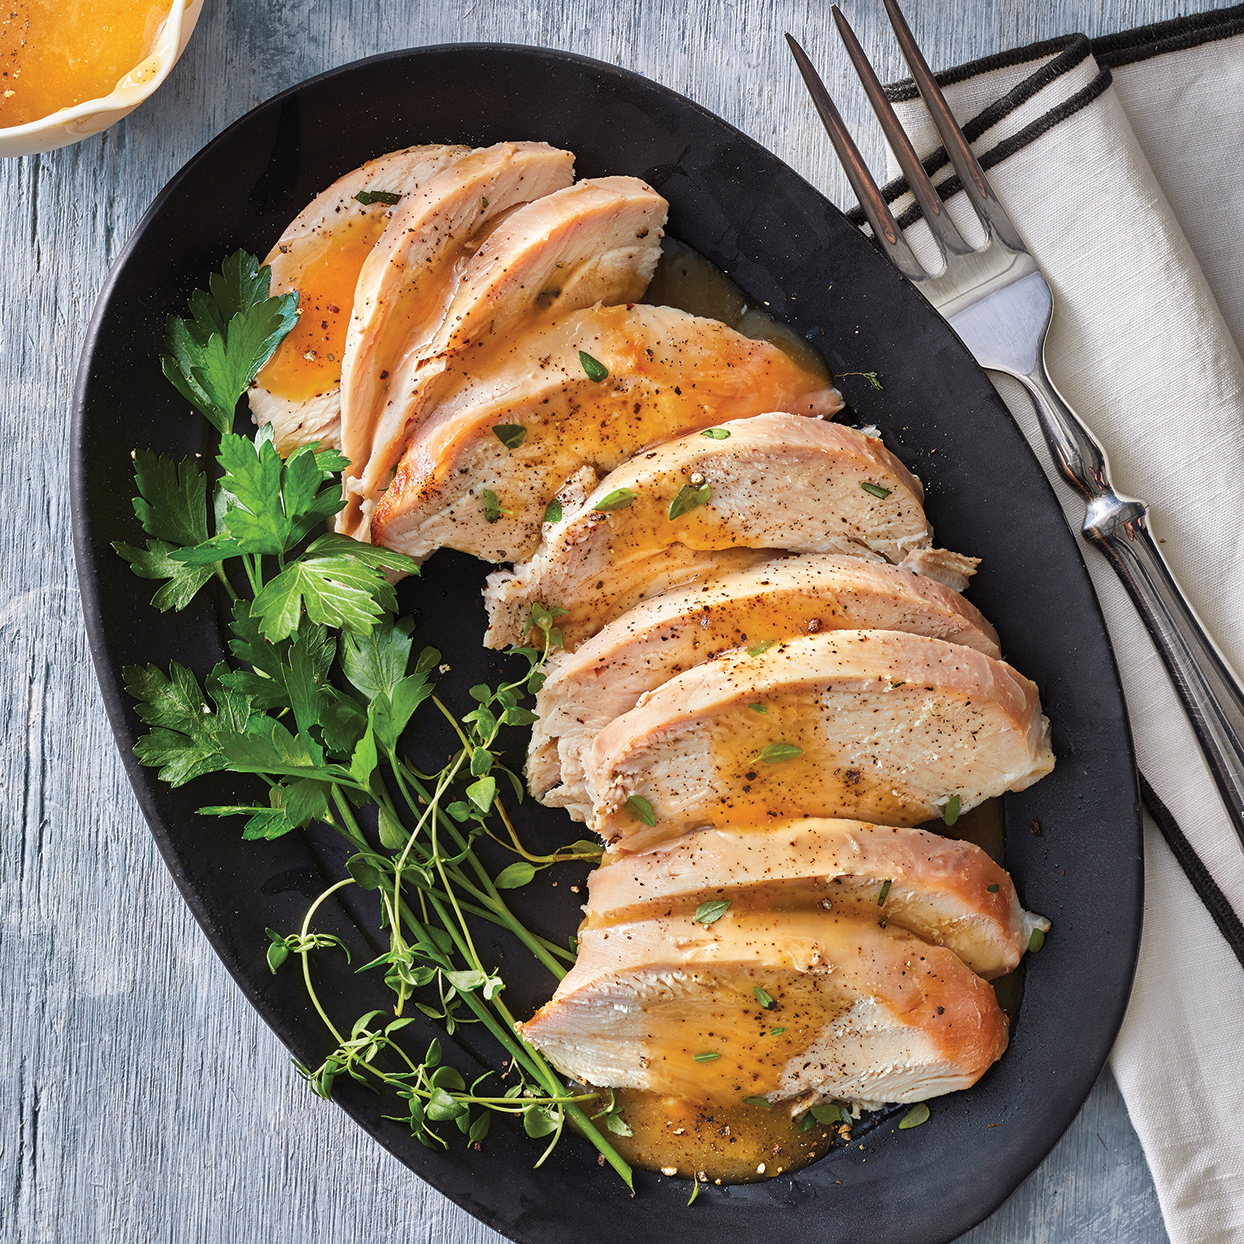 Slow-Cooker Maple-Mustard Turkey Breast